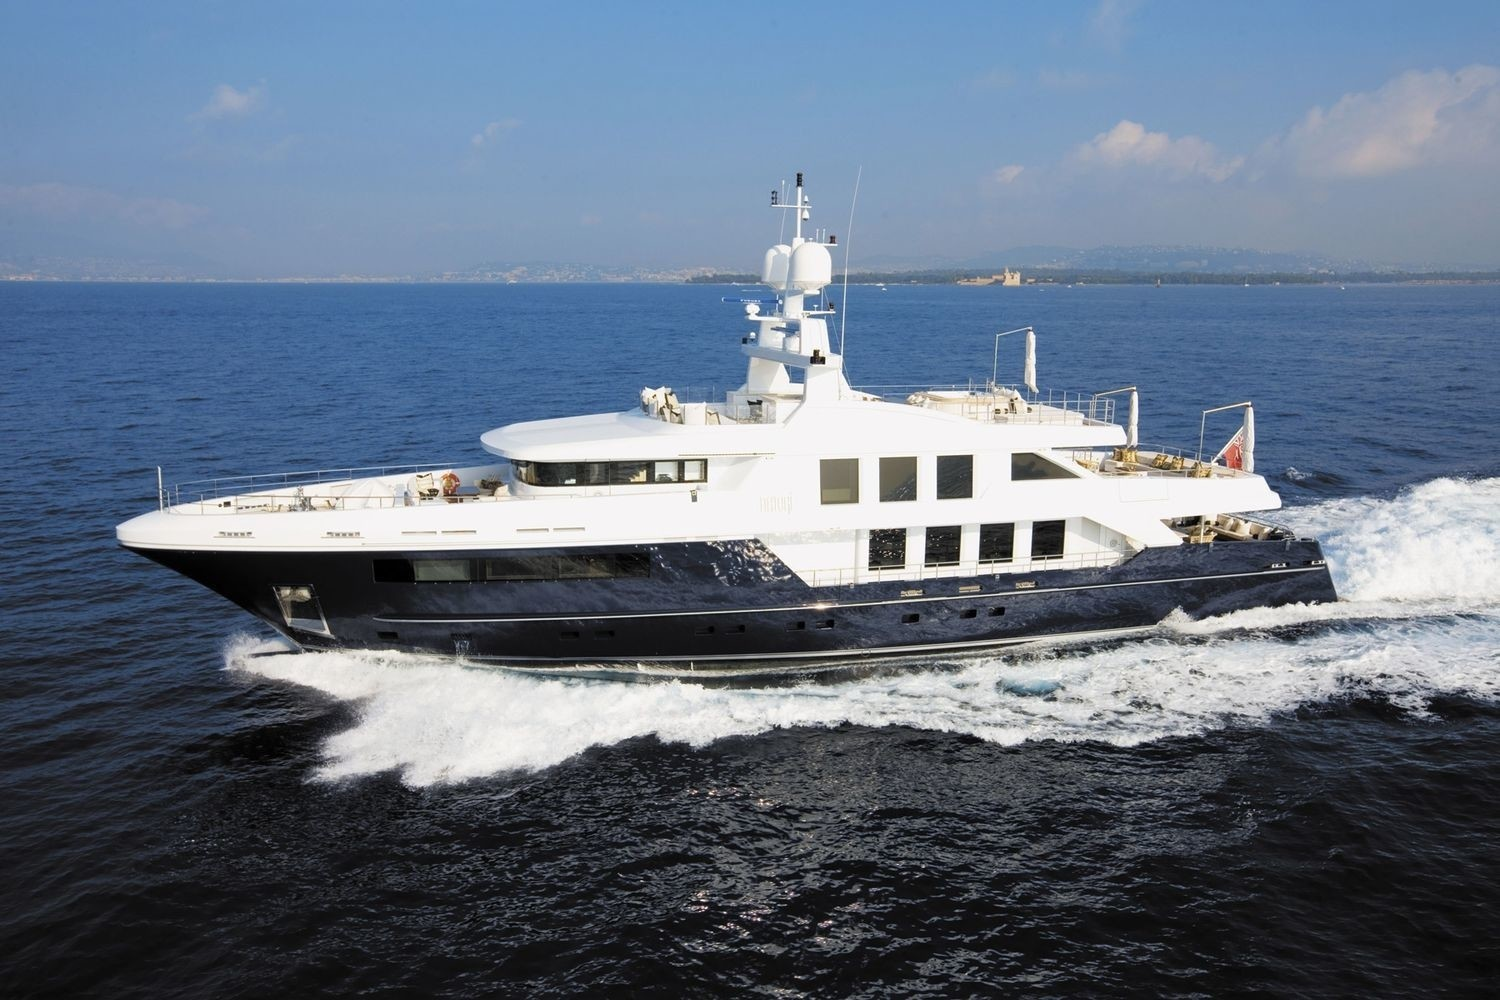 Overview: Yacht CLICIA's Cruising Photograph